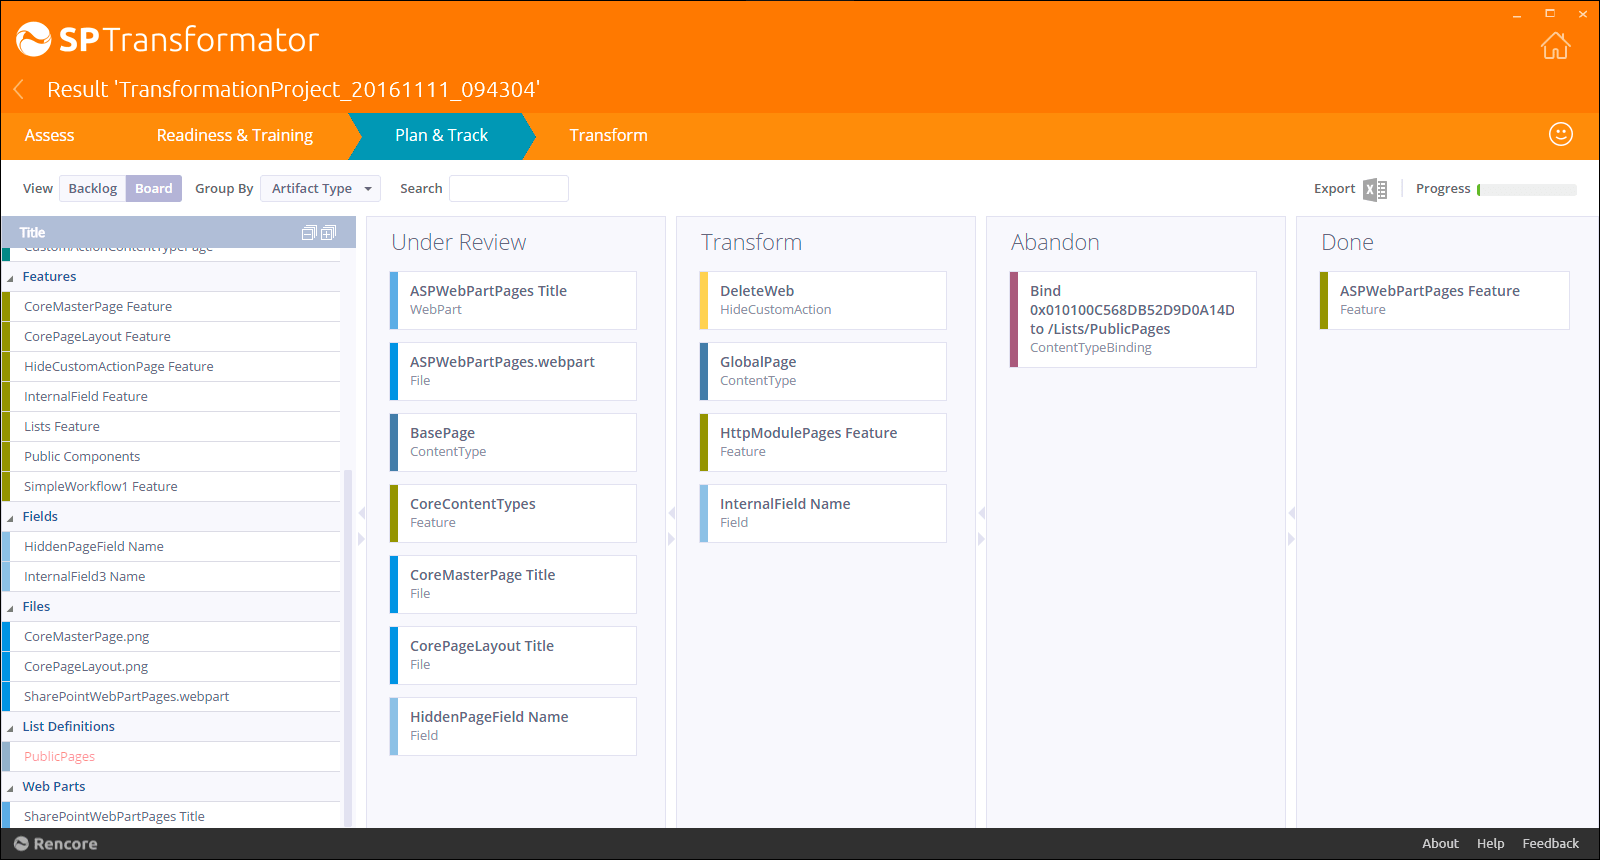 Get an overview and plan your transformation in a Kanban board